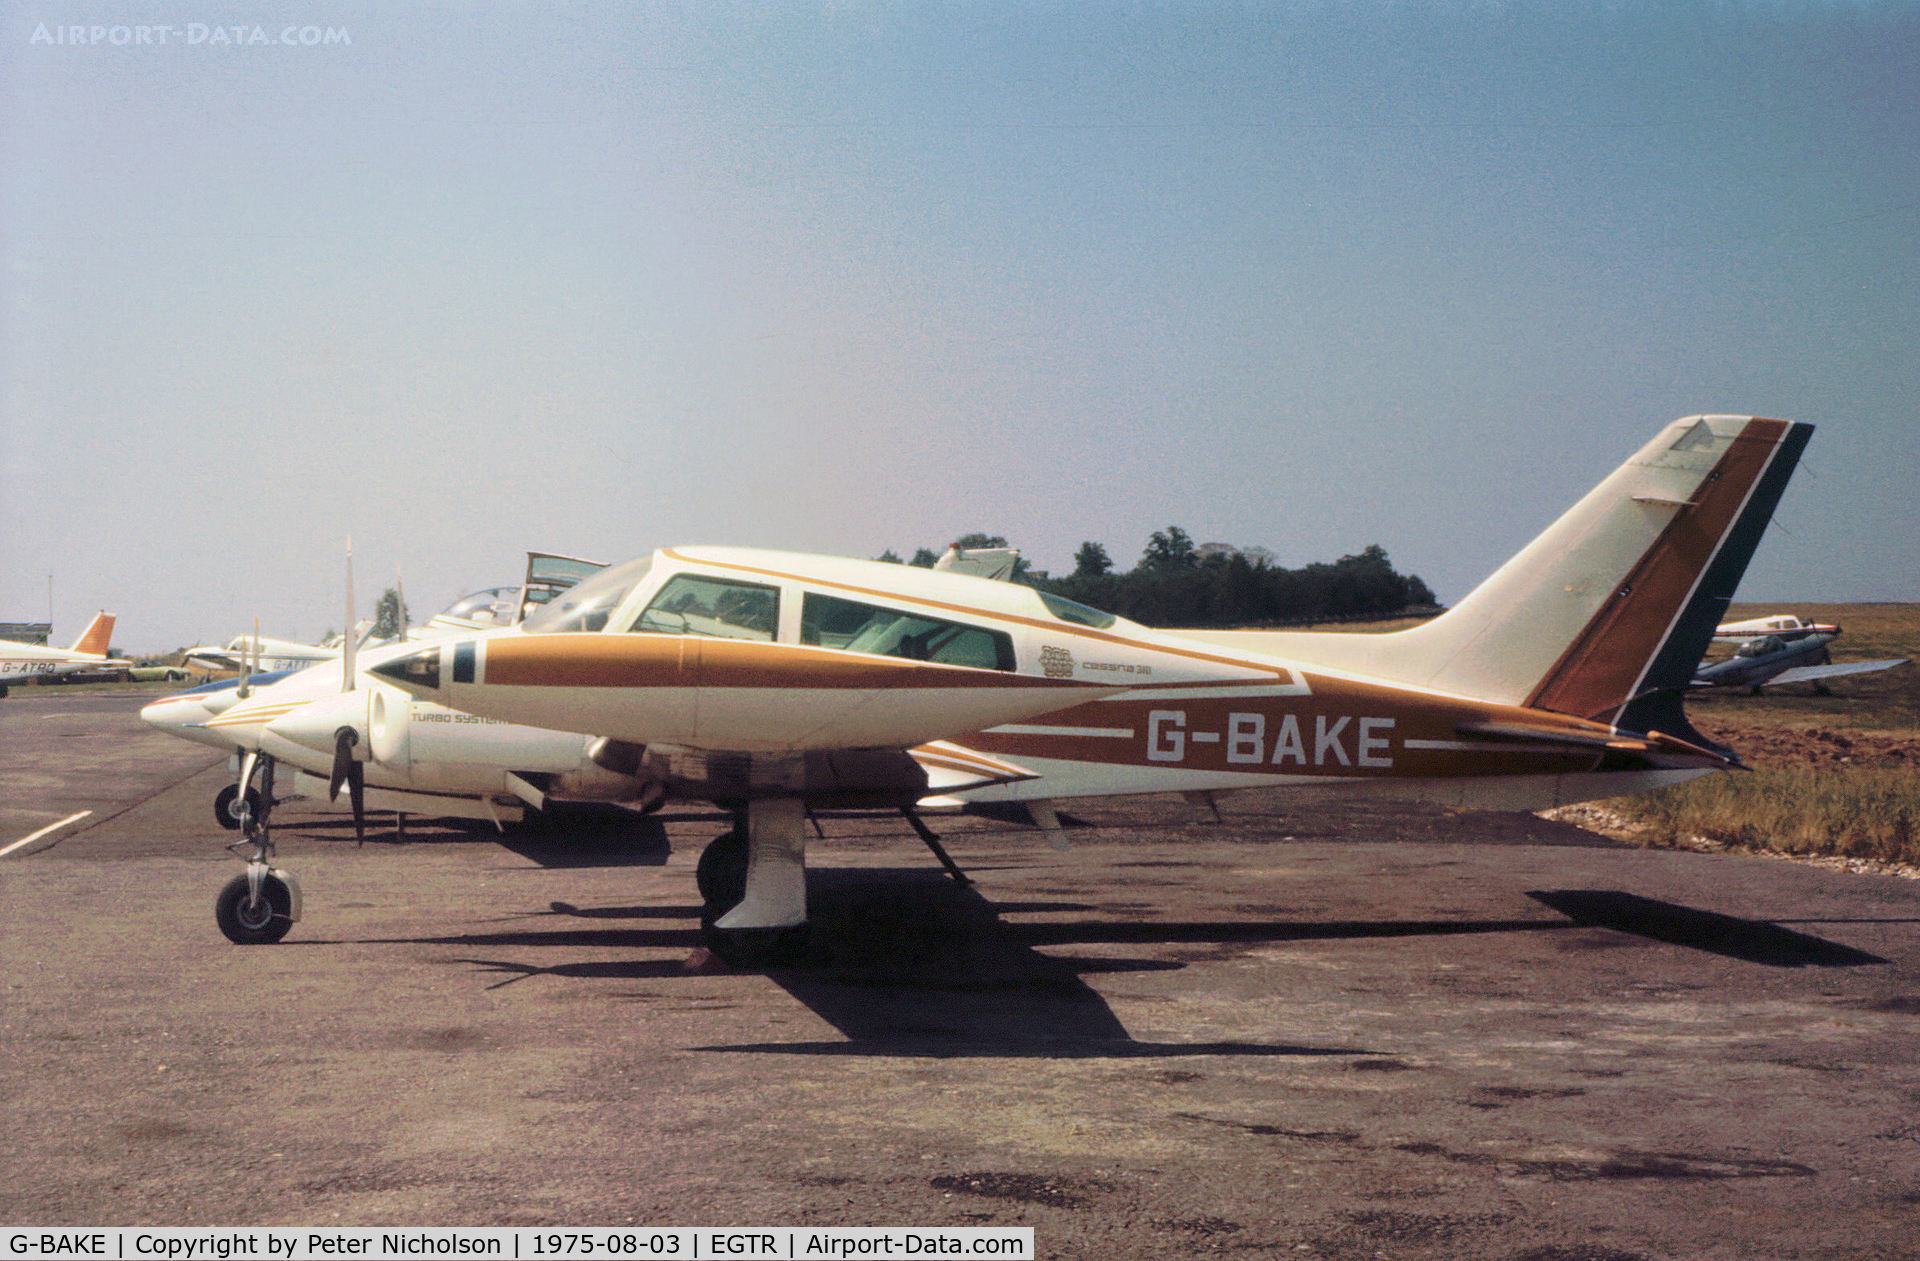 G-BAKE, 1972 Cessna T310Q C/N 310Q-0641, Cessna T310Q resident at Elstree as seen in the Summer of 1975.